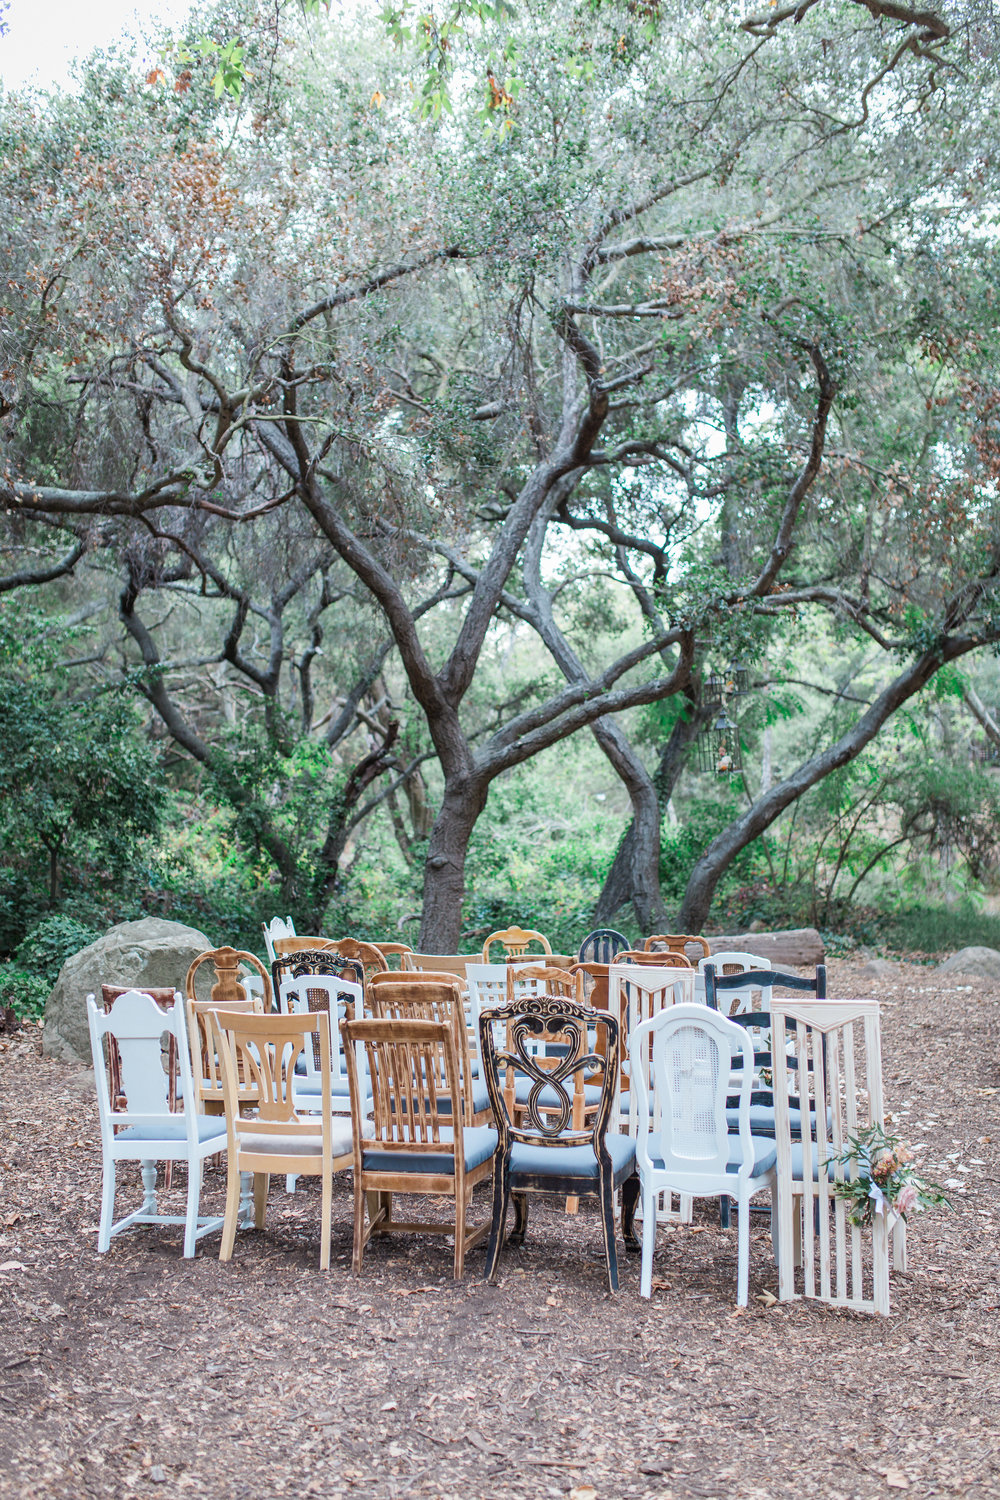 santabarbarawedding.com | photo: Kiel Rucker | Same Sex Wedding Ceremony in an Oak Grove